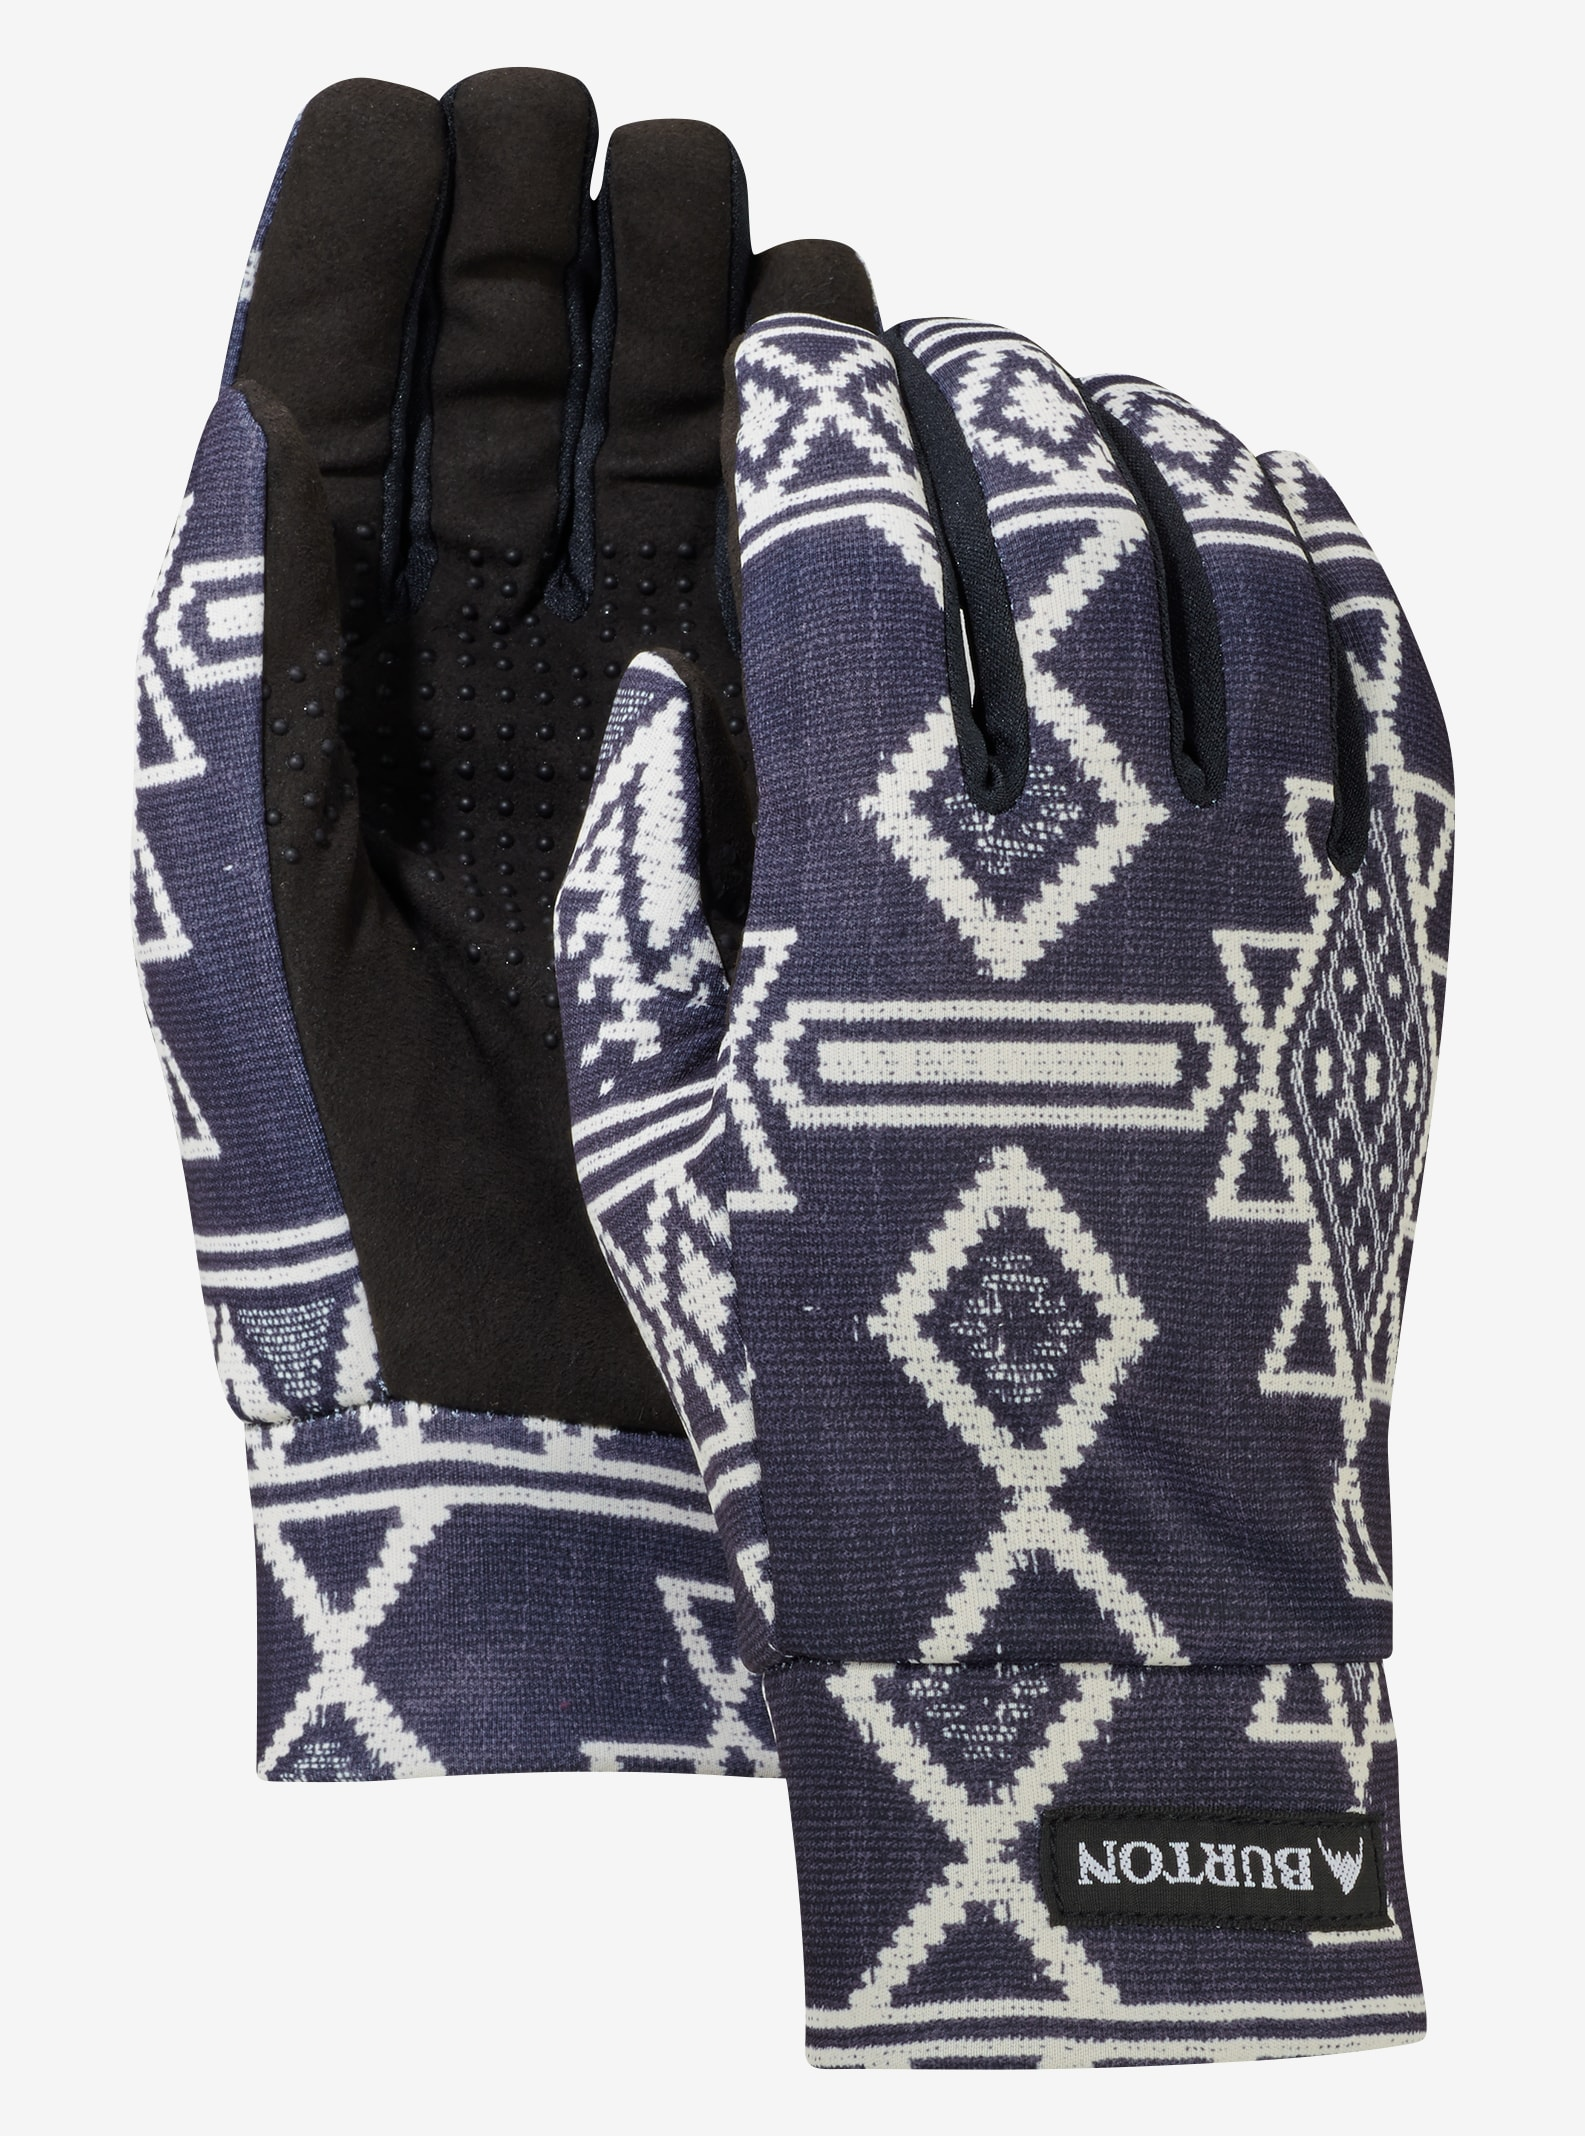 Women's Burton Touch N Go Glove shown in True Black Mojave